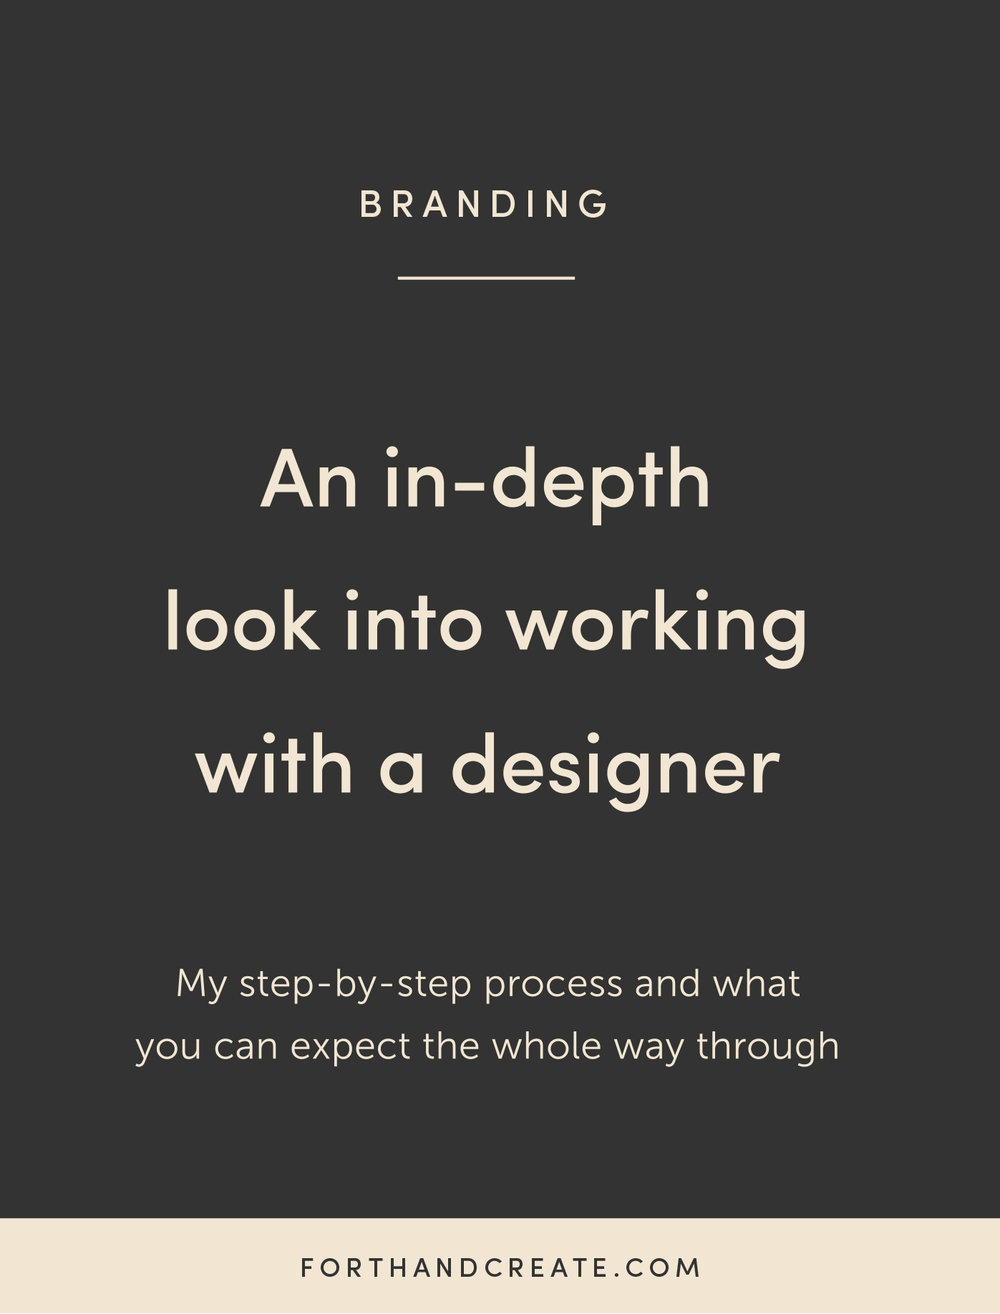 An in-depth look into working with a designer and what you can expect the whole way through. #branding #brandhelp #branddesigner #hiringadesigner